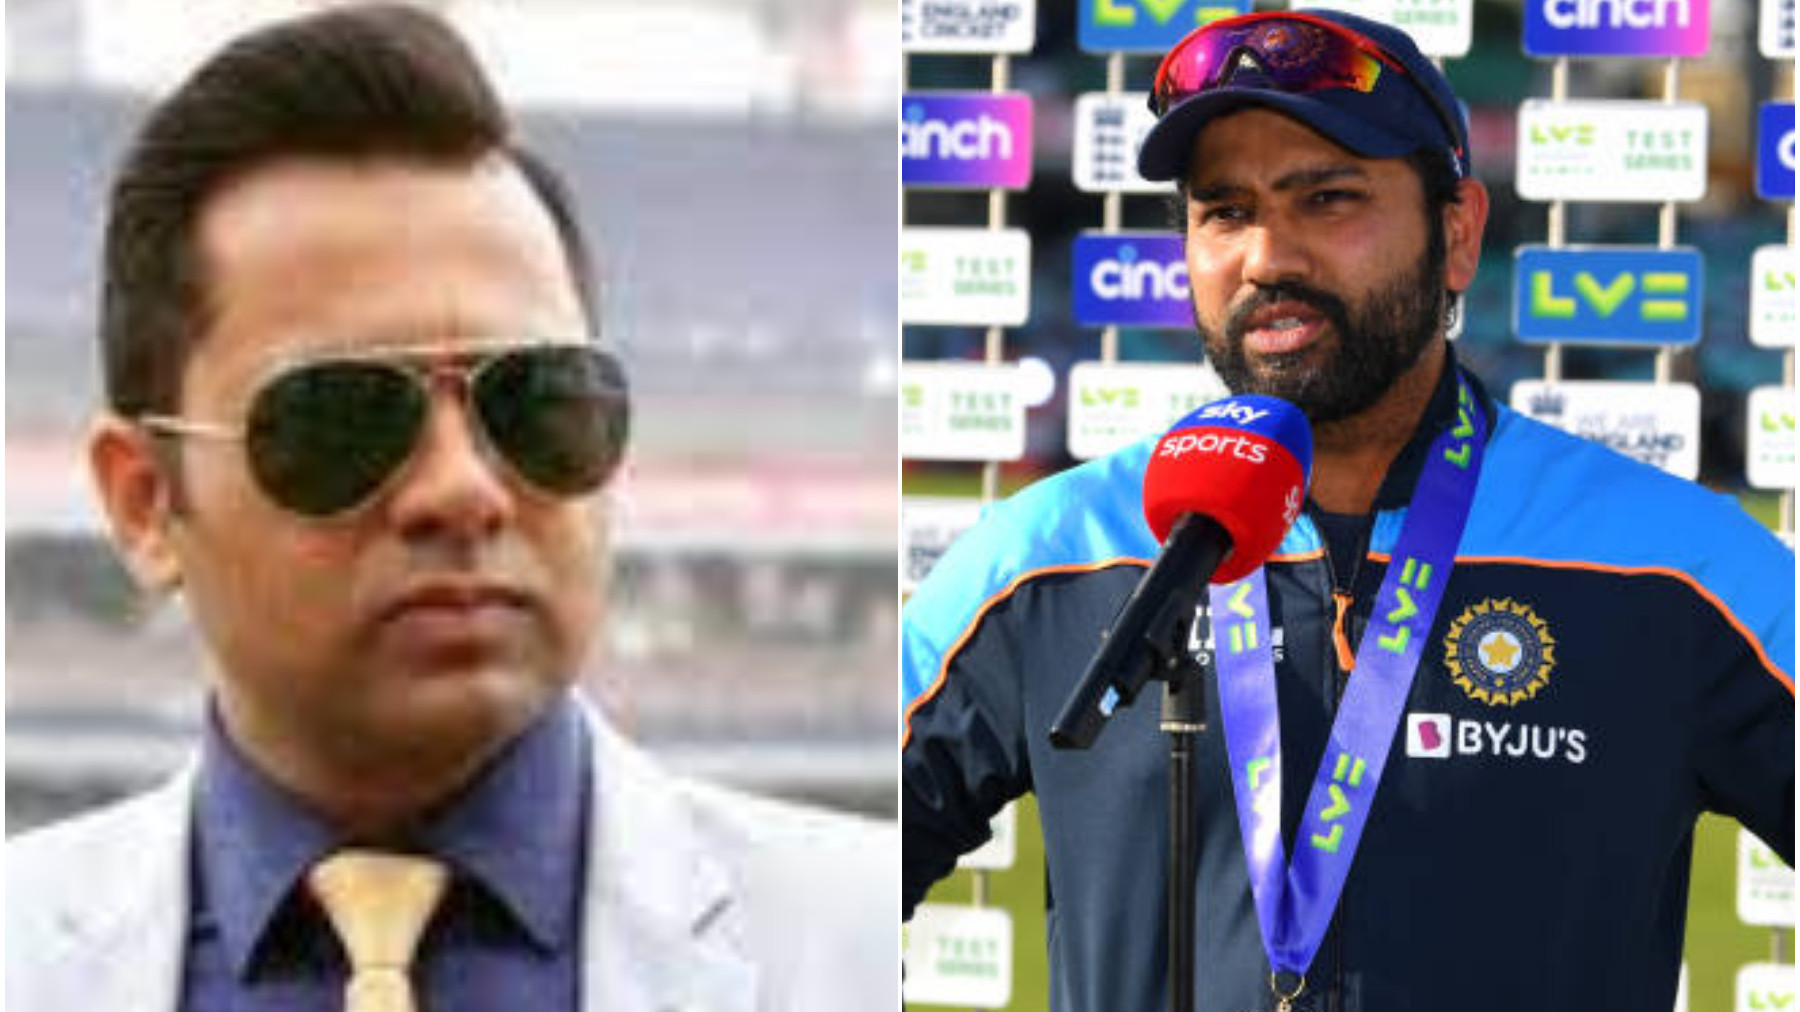 ENG v IND 2021: Aakash Chopra calls Rohit Sharma 'courageous' for making radical changes to his game